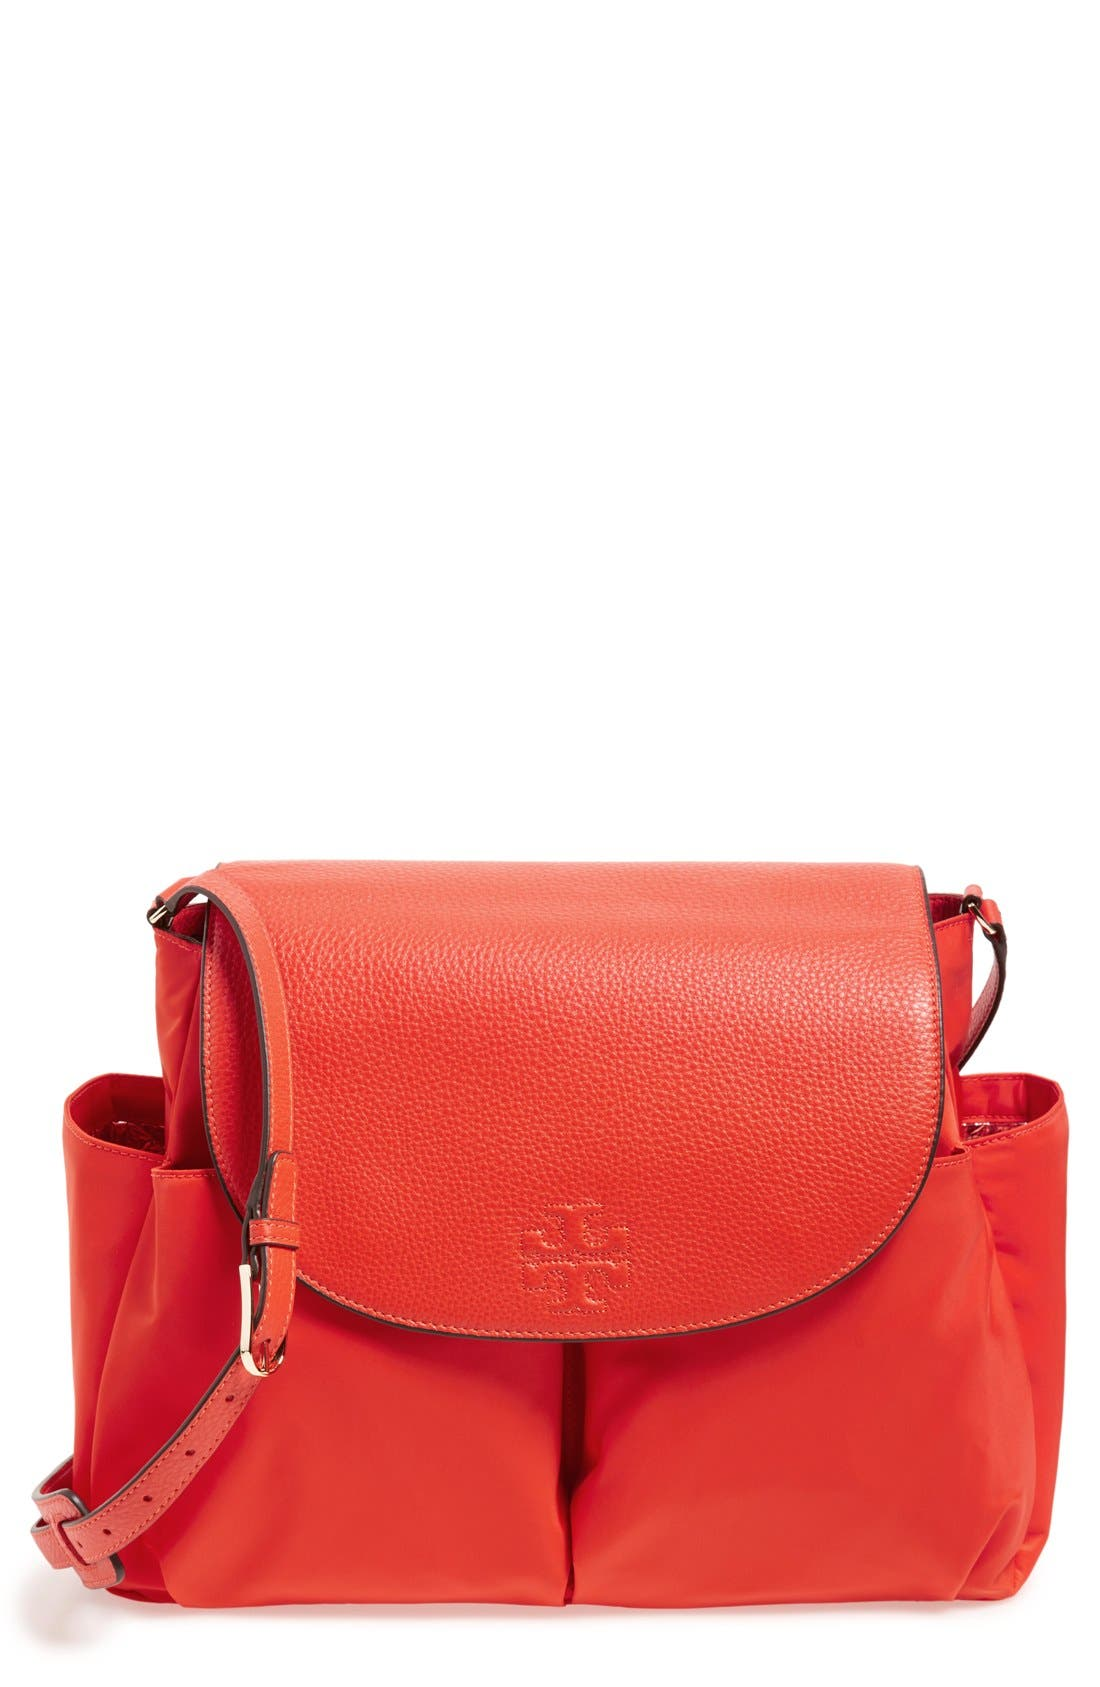 'Thea' Messenger Leather & Nylon Baby Bag,                             Main thumbnail 1, color,                             Poppy Red